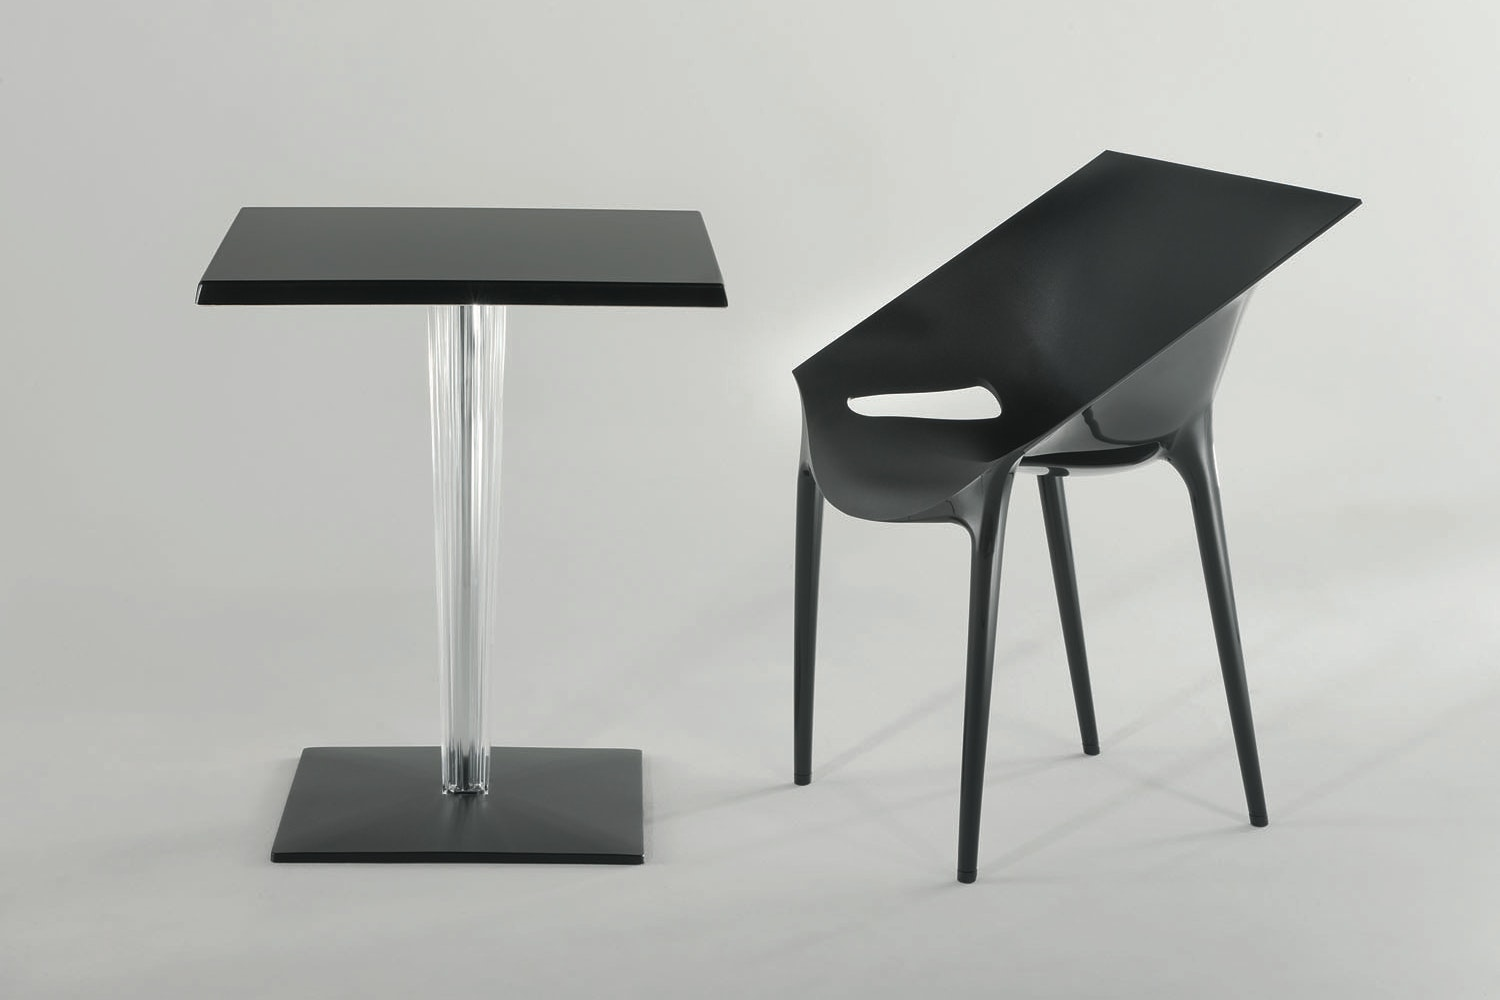 TopTop for Dr. YES Table with Square Leg by Philippe Starck with Eugeni Quitllet for Kartell